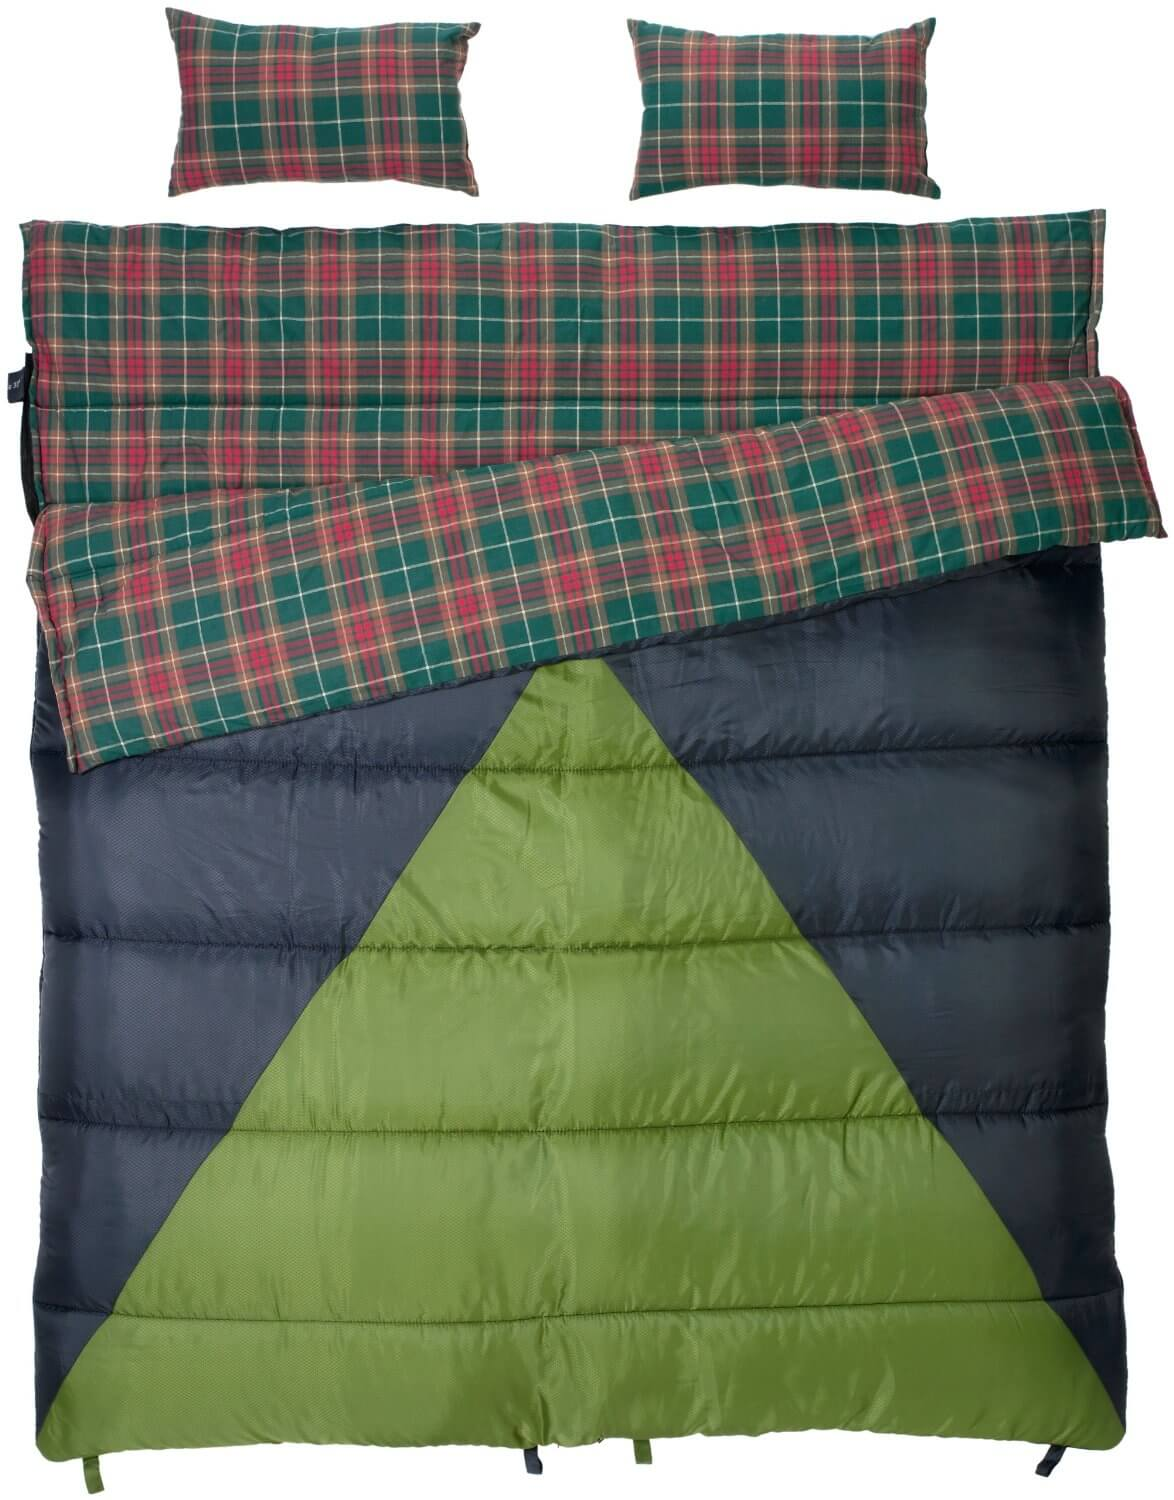 Slumberjack Bonnie & Clyde Double Sleeping Bag Review For ...